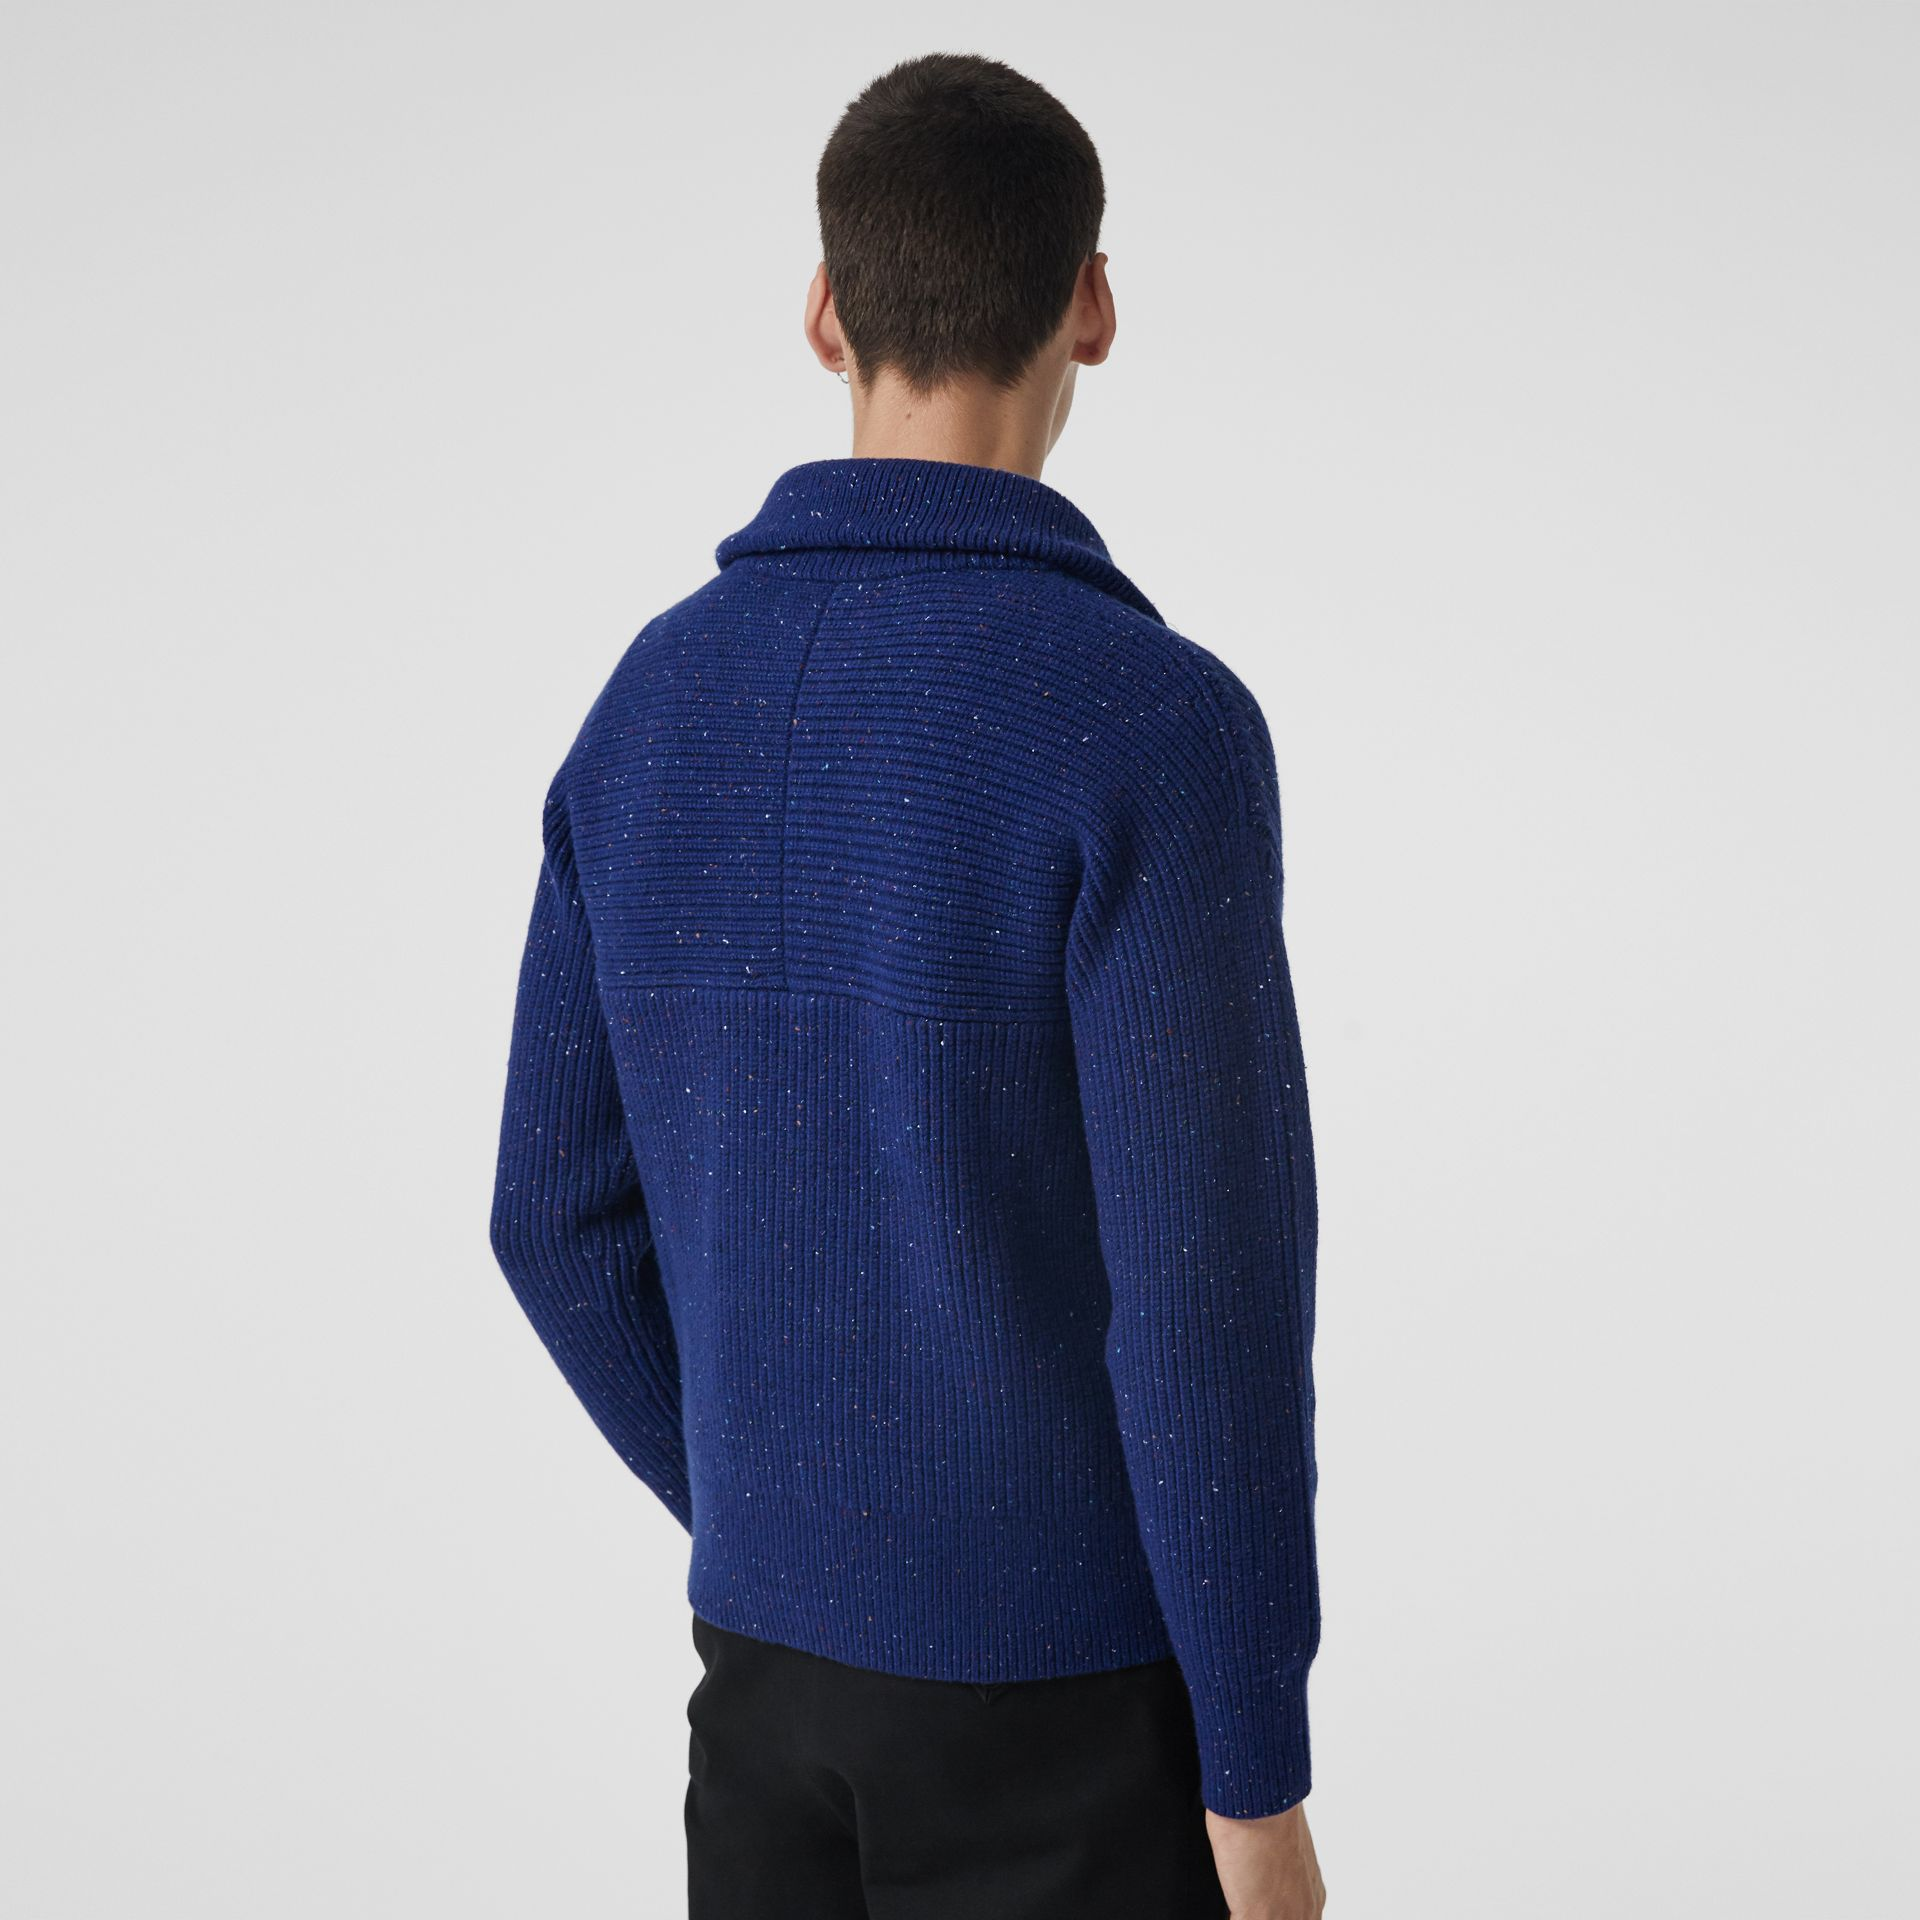 Rib Knit Wool Cashmere Blend Half-zip Sweater in Navy - Men | Burberry Canada - gallery image 2